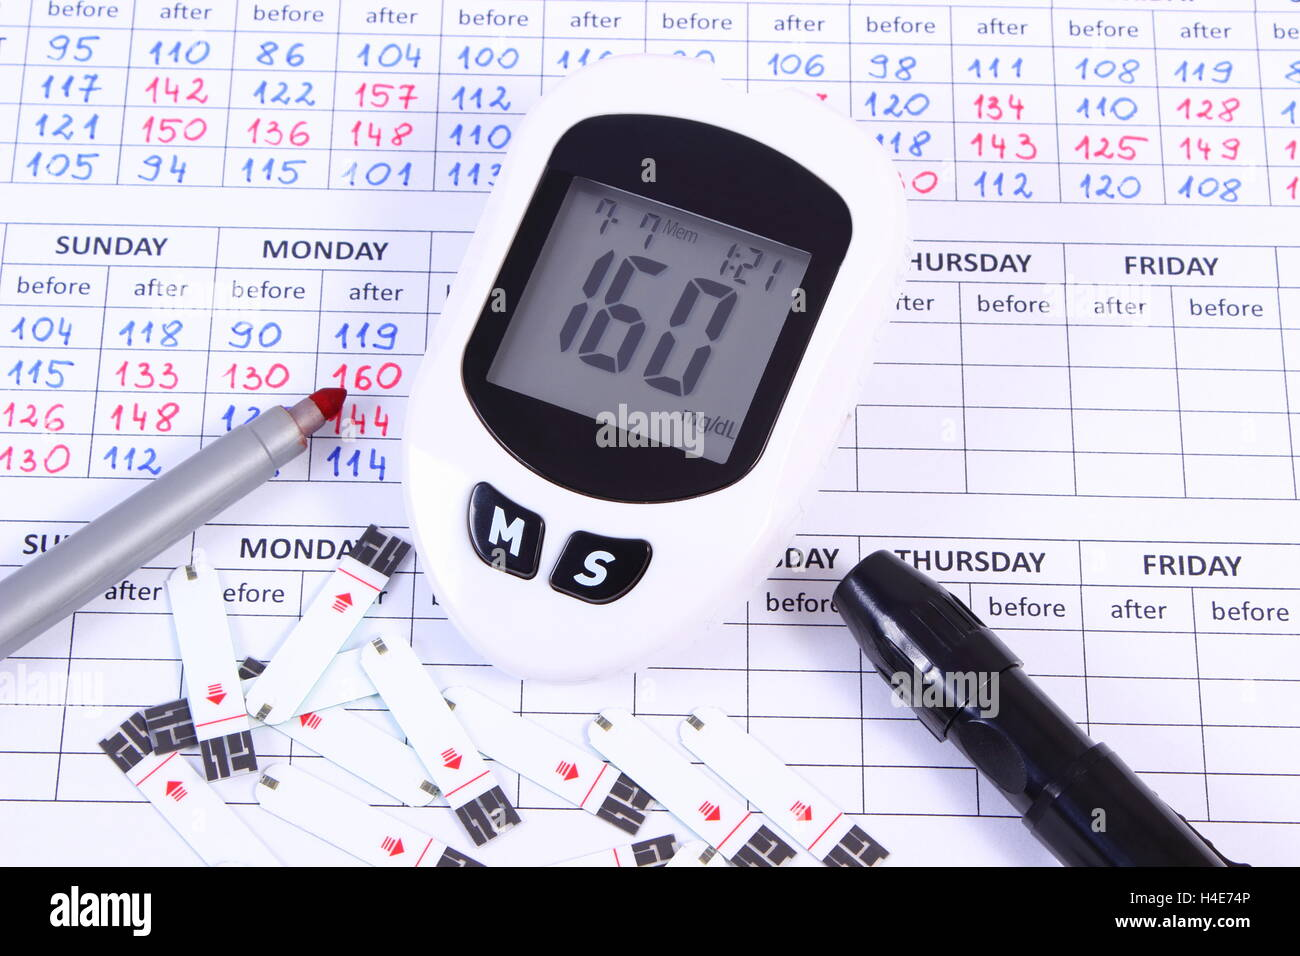 Glucose meter with bad result on medical form with result of measurement sugar  level, checking and measuring sugar level